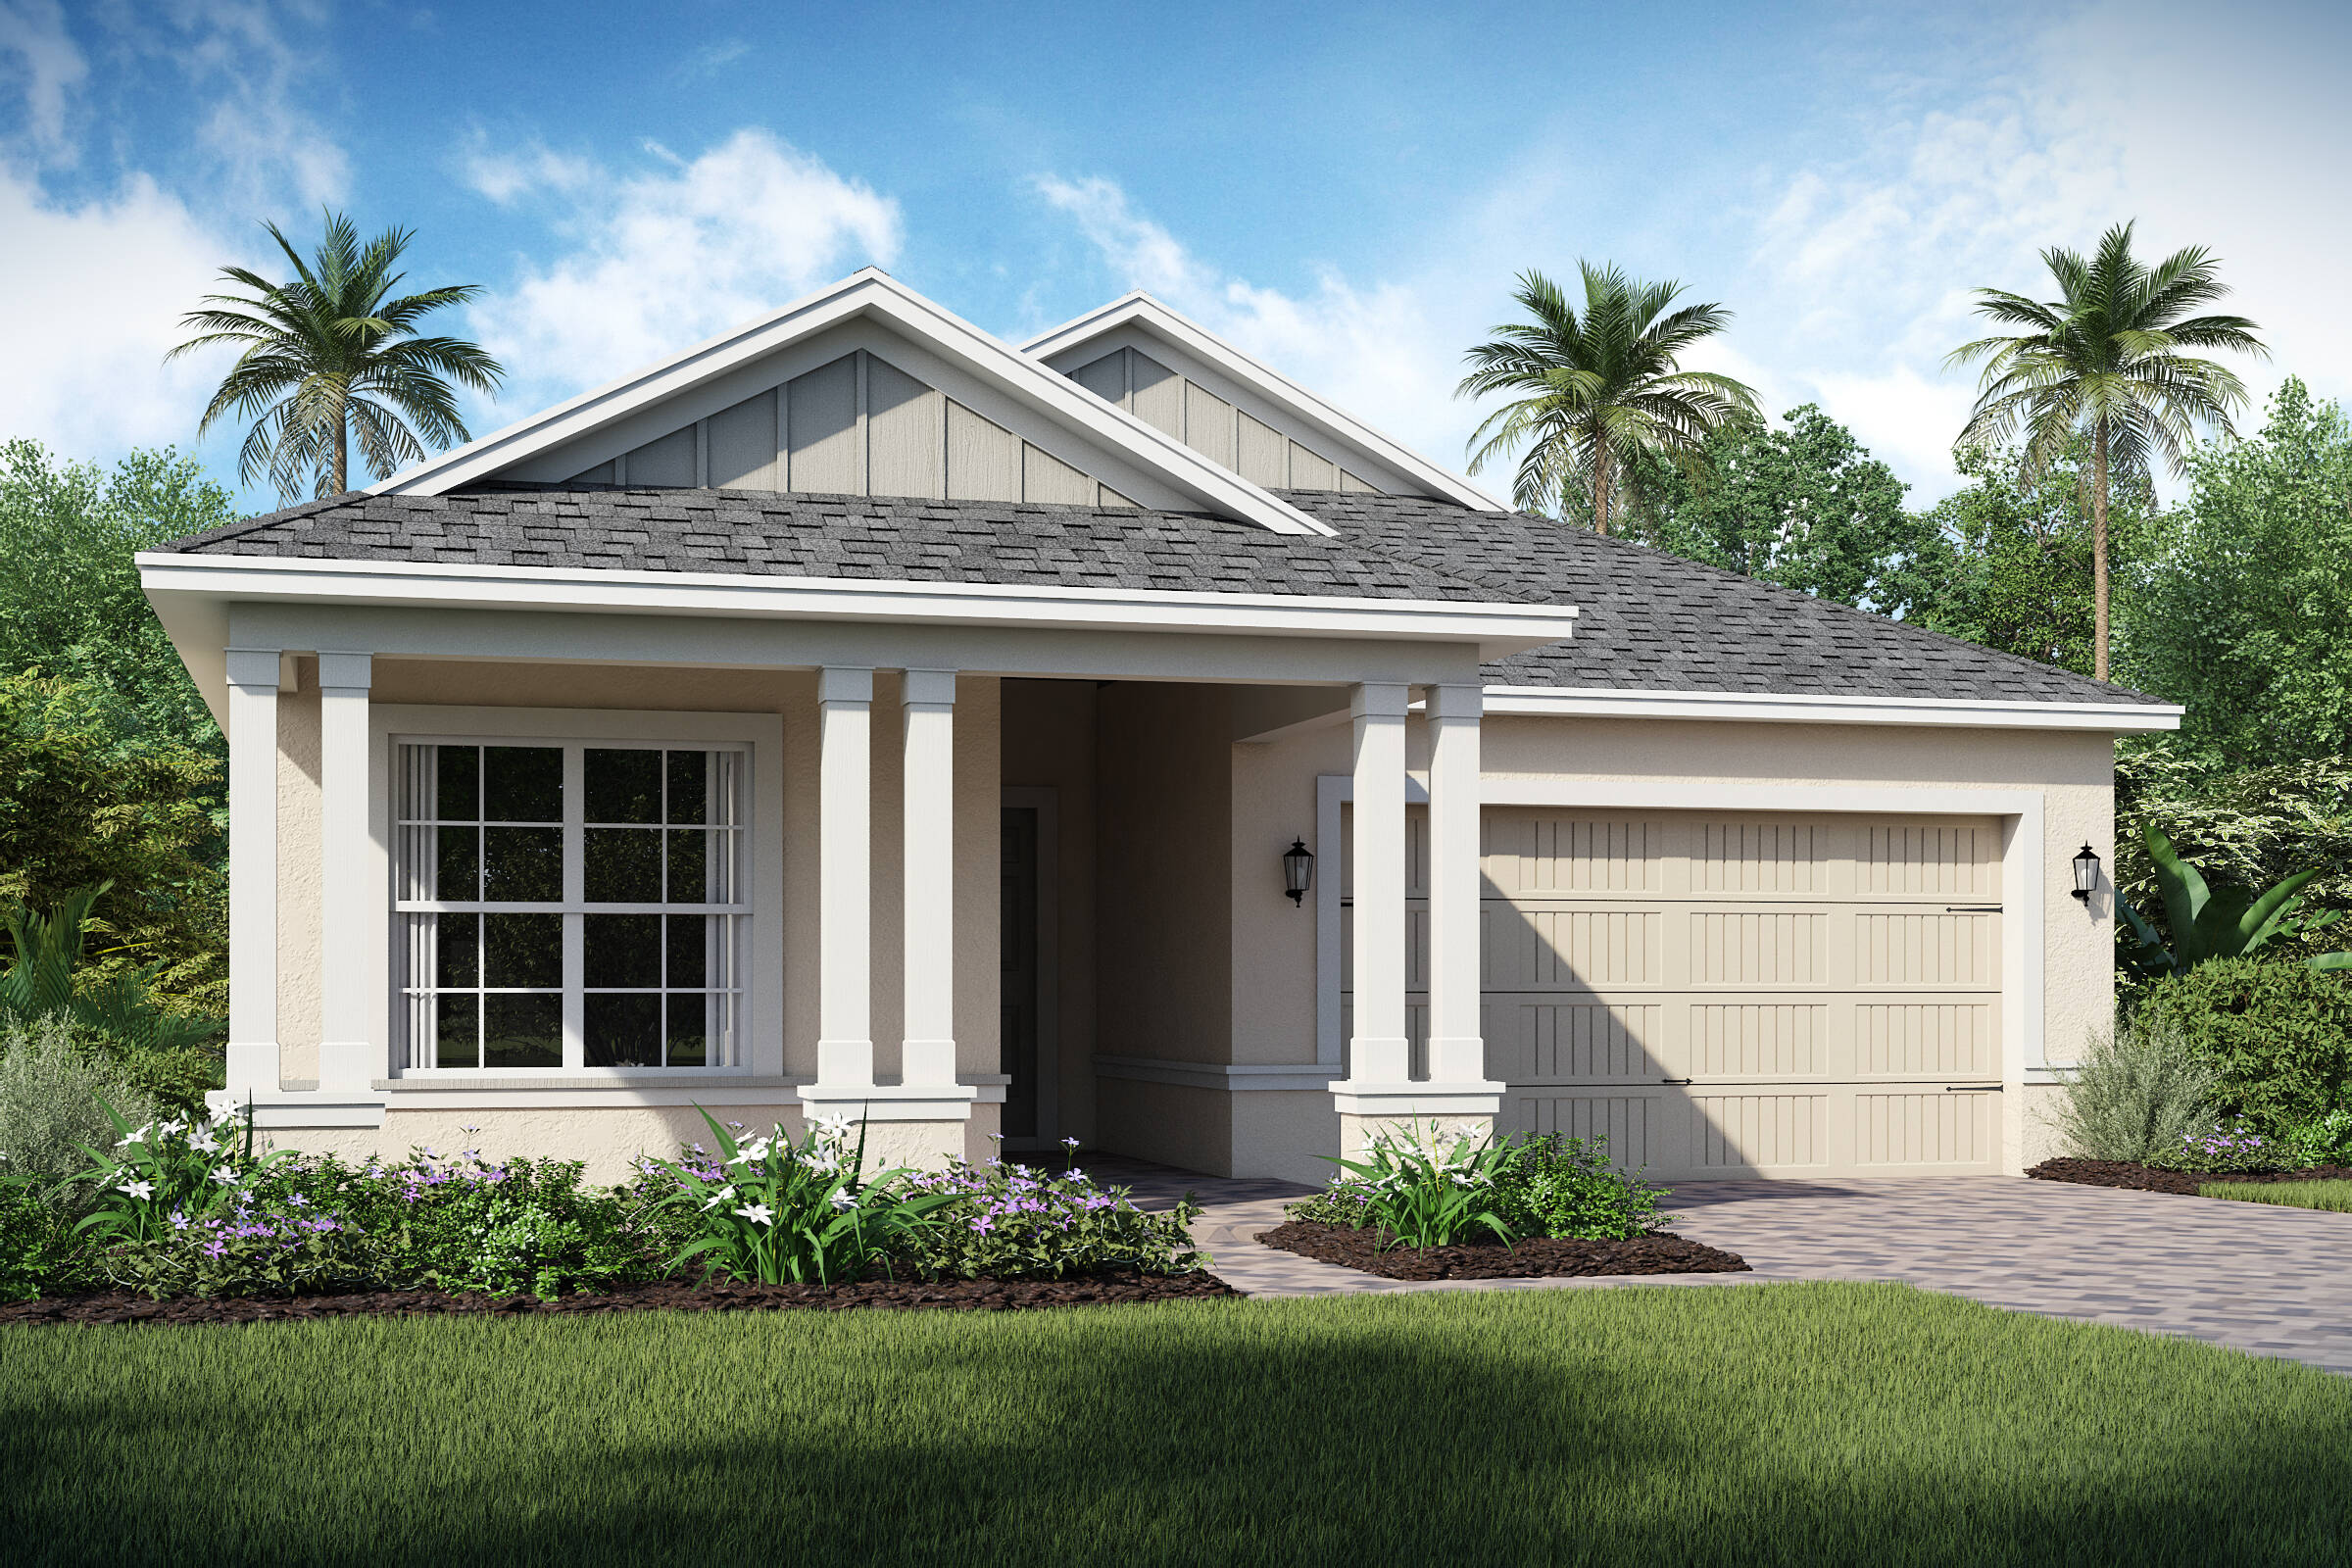 Dominica-C-elev new homes in orlando